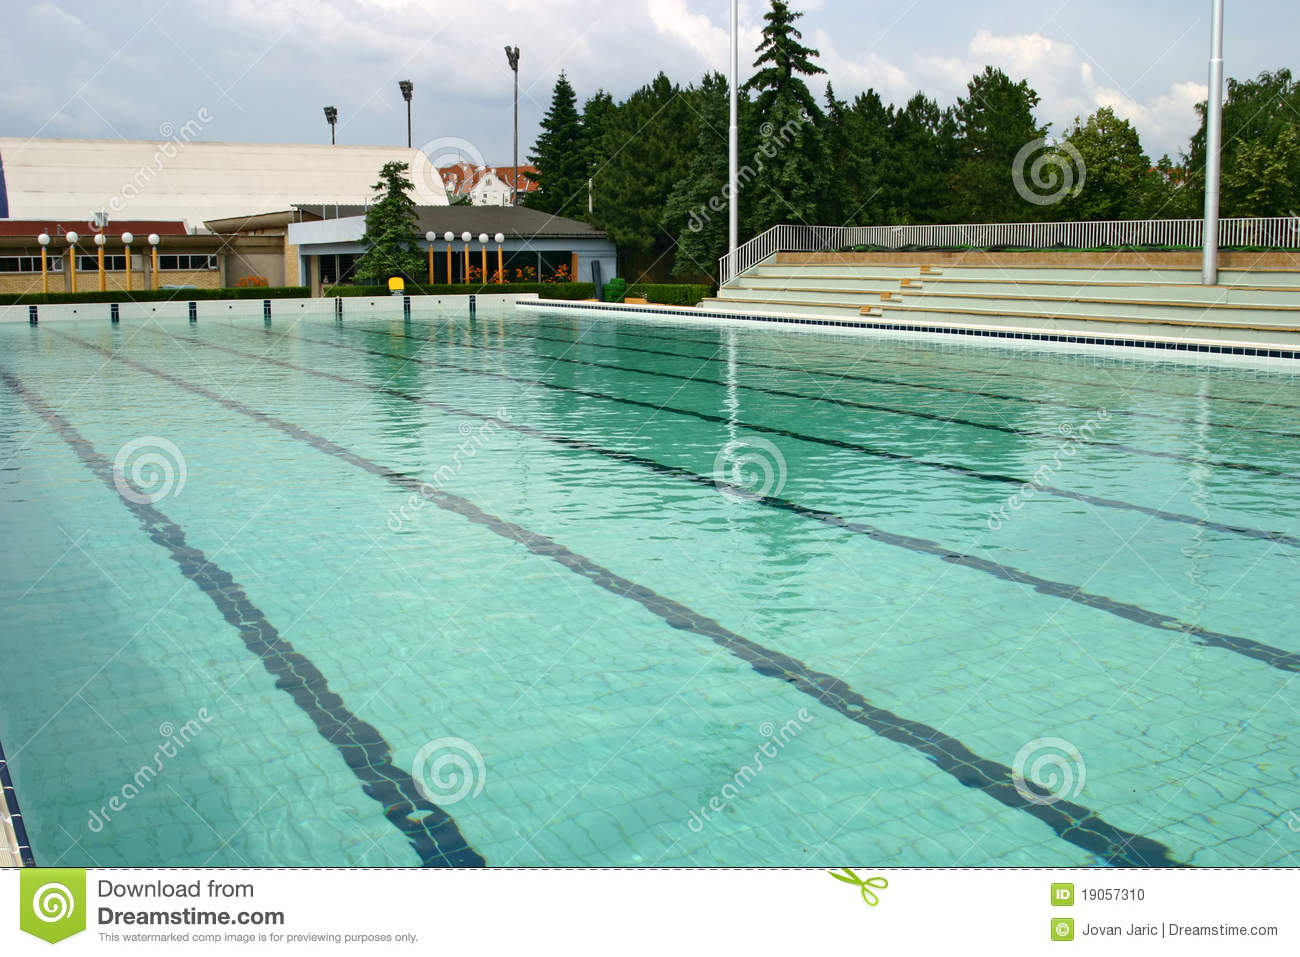 Piscine olympique photo stock image 19057310 for Construction piscine olympique aubervilliers